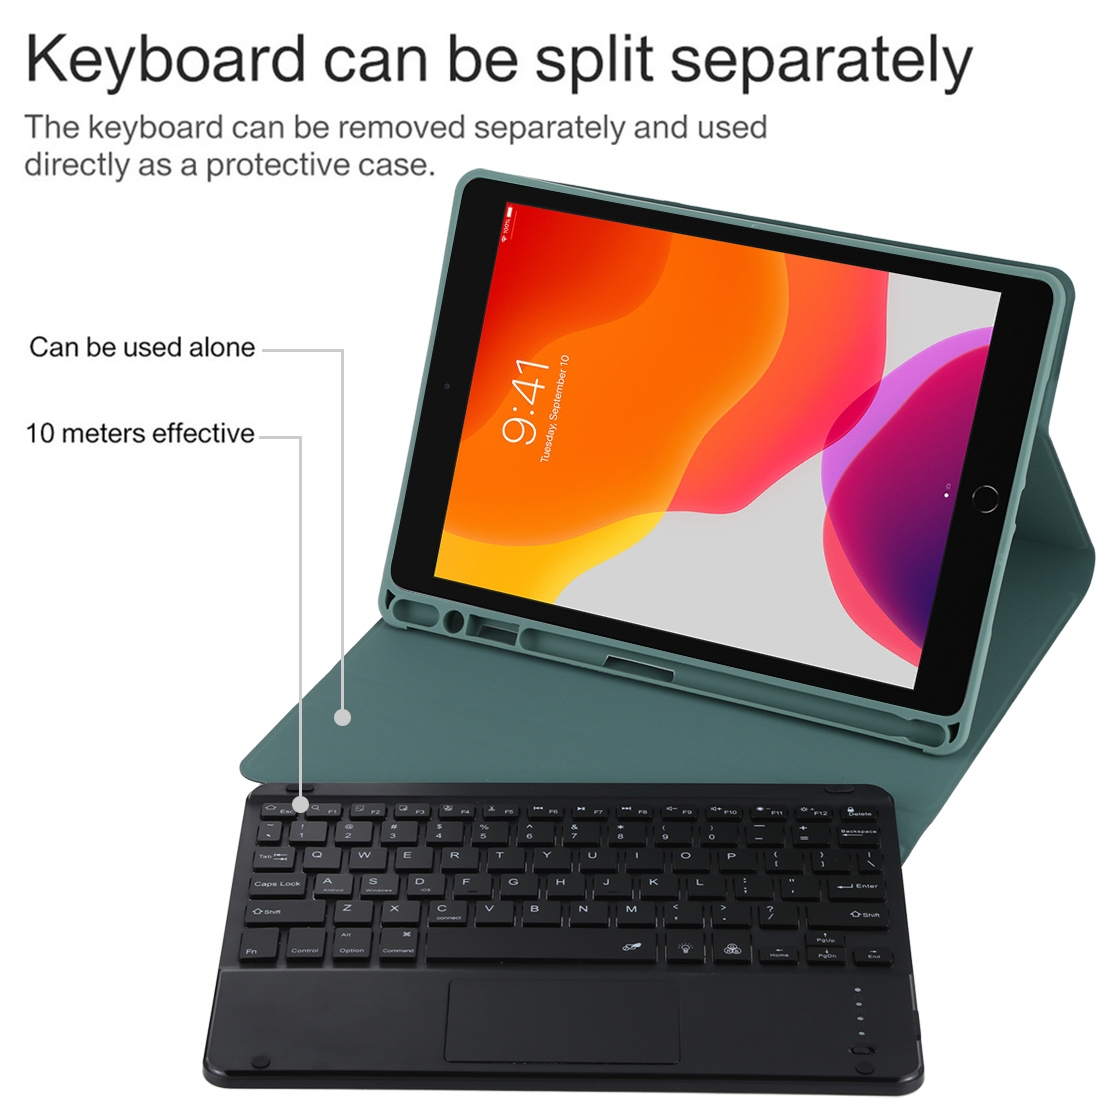 iPad Air Case With Keyboard For iPad 10.2/Air (2019) Leather Case With Backlit Keyboard (Dark Green)